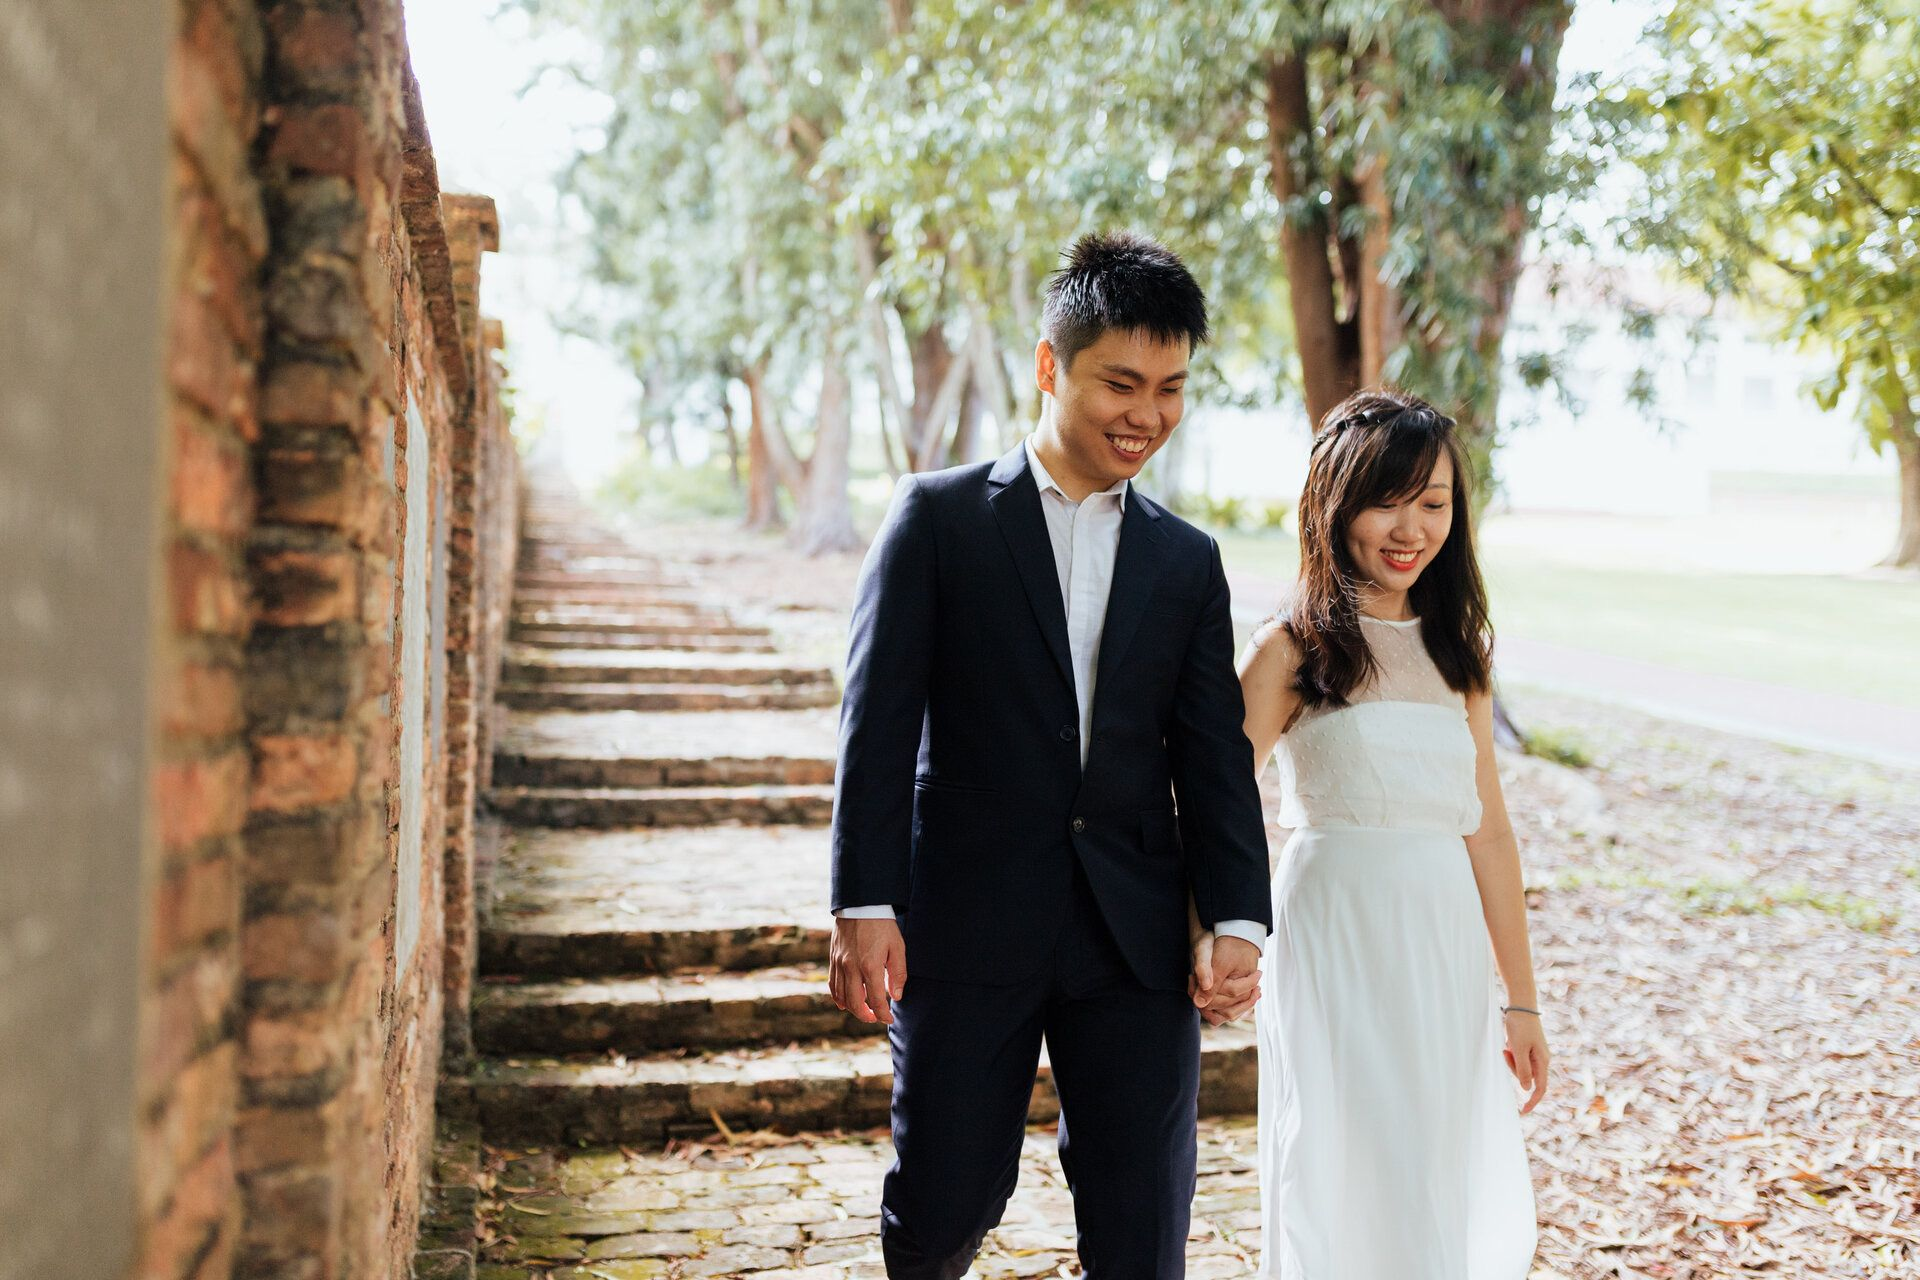 Fort Canning Park Singapore In 2020 Wedding Shoot Pre Wedding Wedding Photography